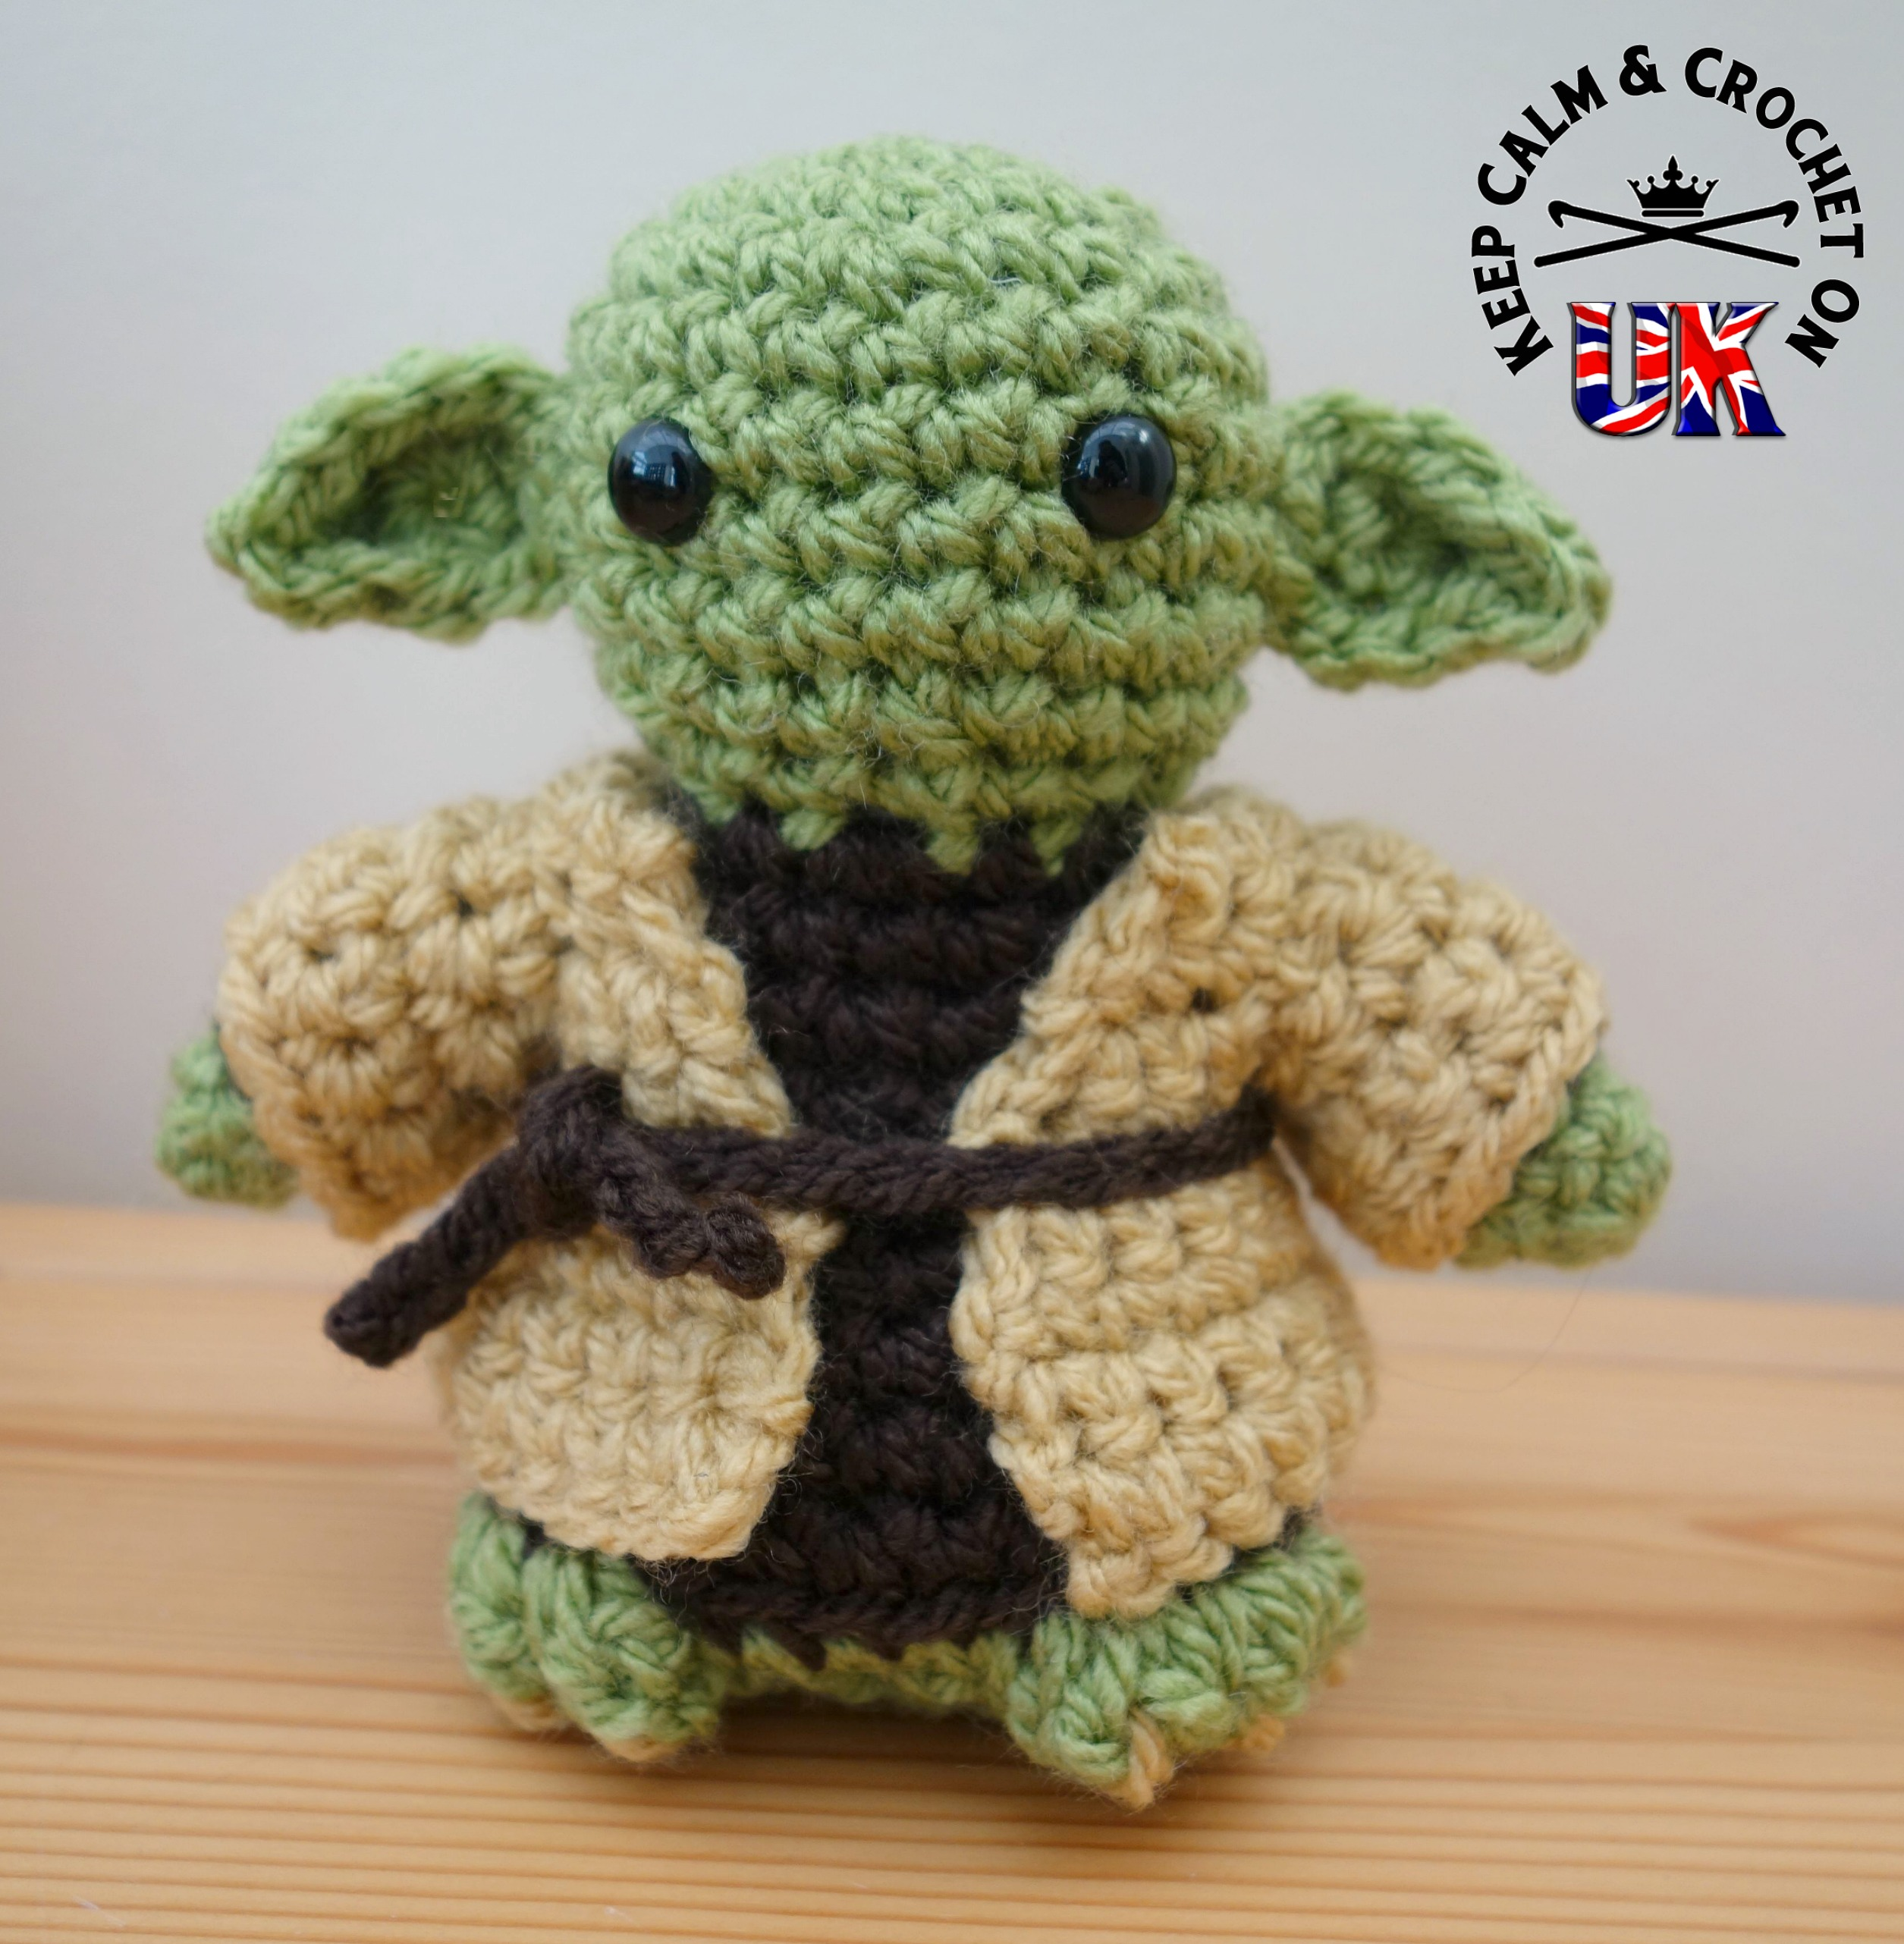 Free Crochet Pattern Star Wars : Crochet Book Reviews Star Wars Crochet by Lucy Collin ...